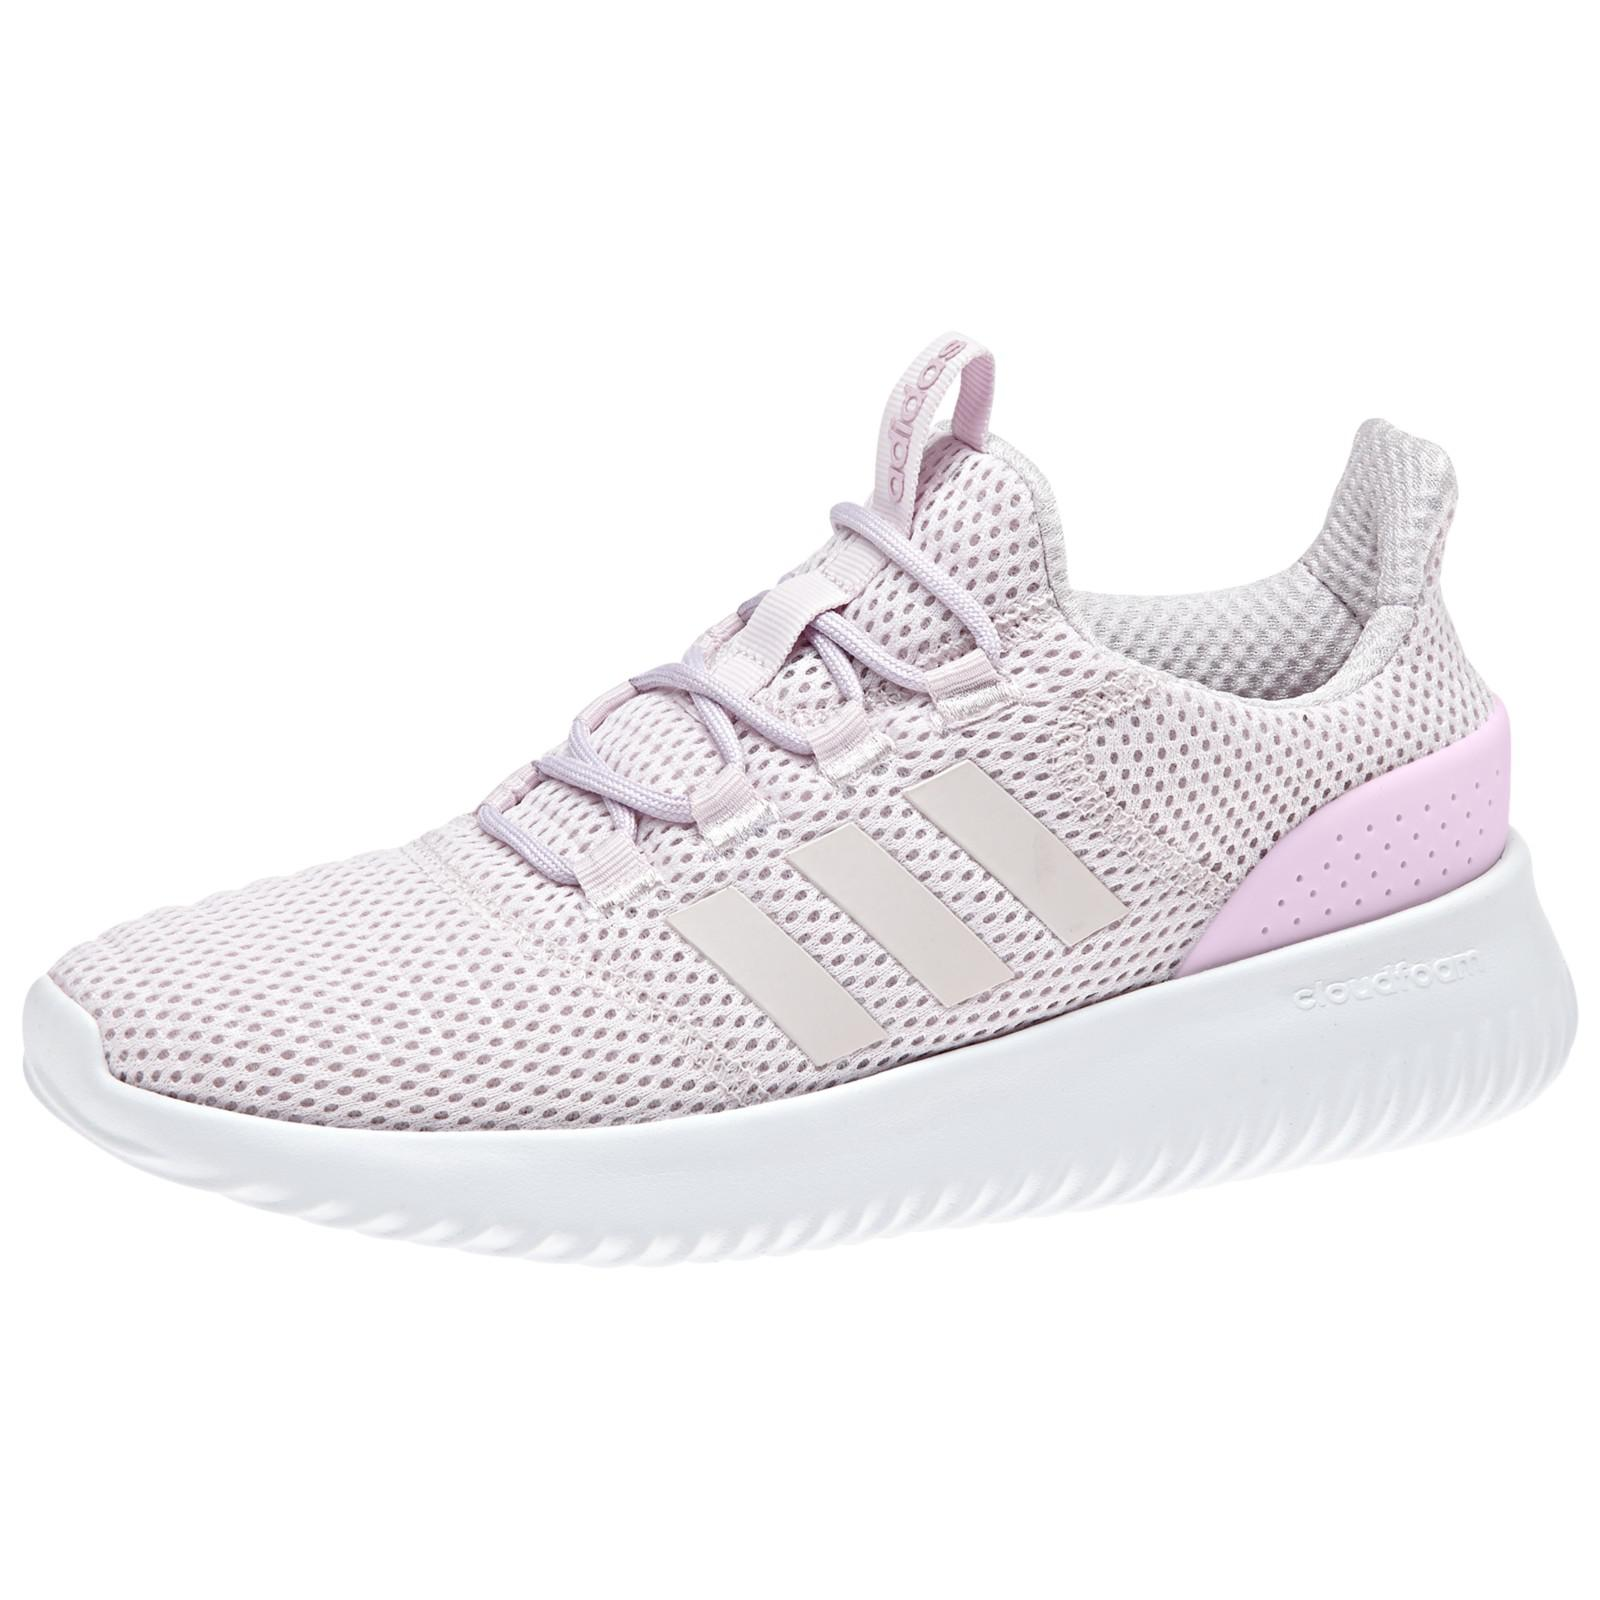 lowest price b59d4 7359d adidas Cloudfoam Ultimate Womens Trainers - Lyst